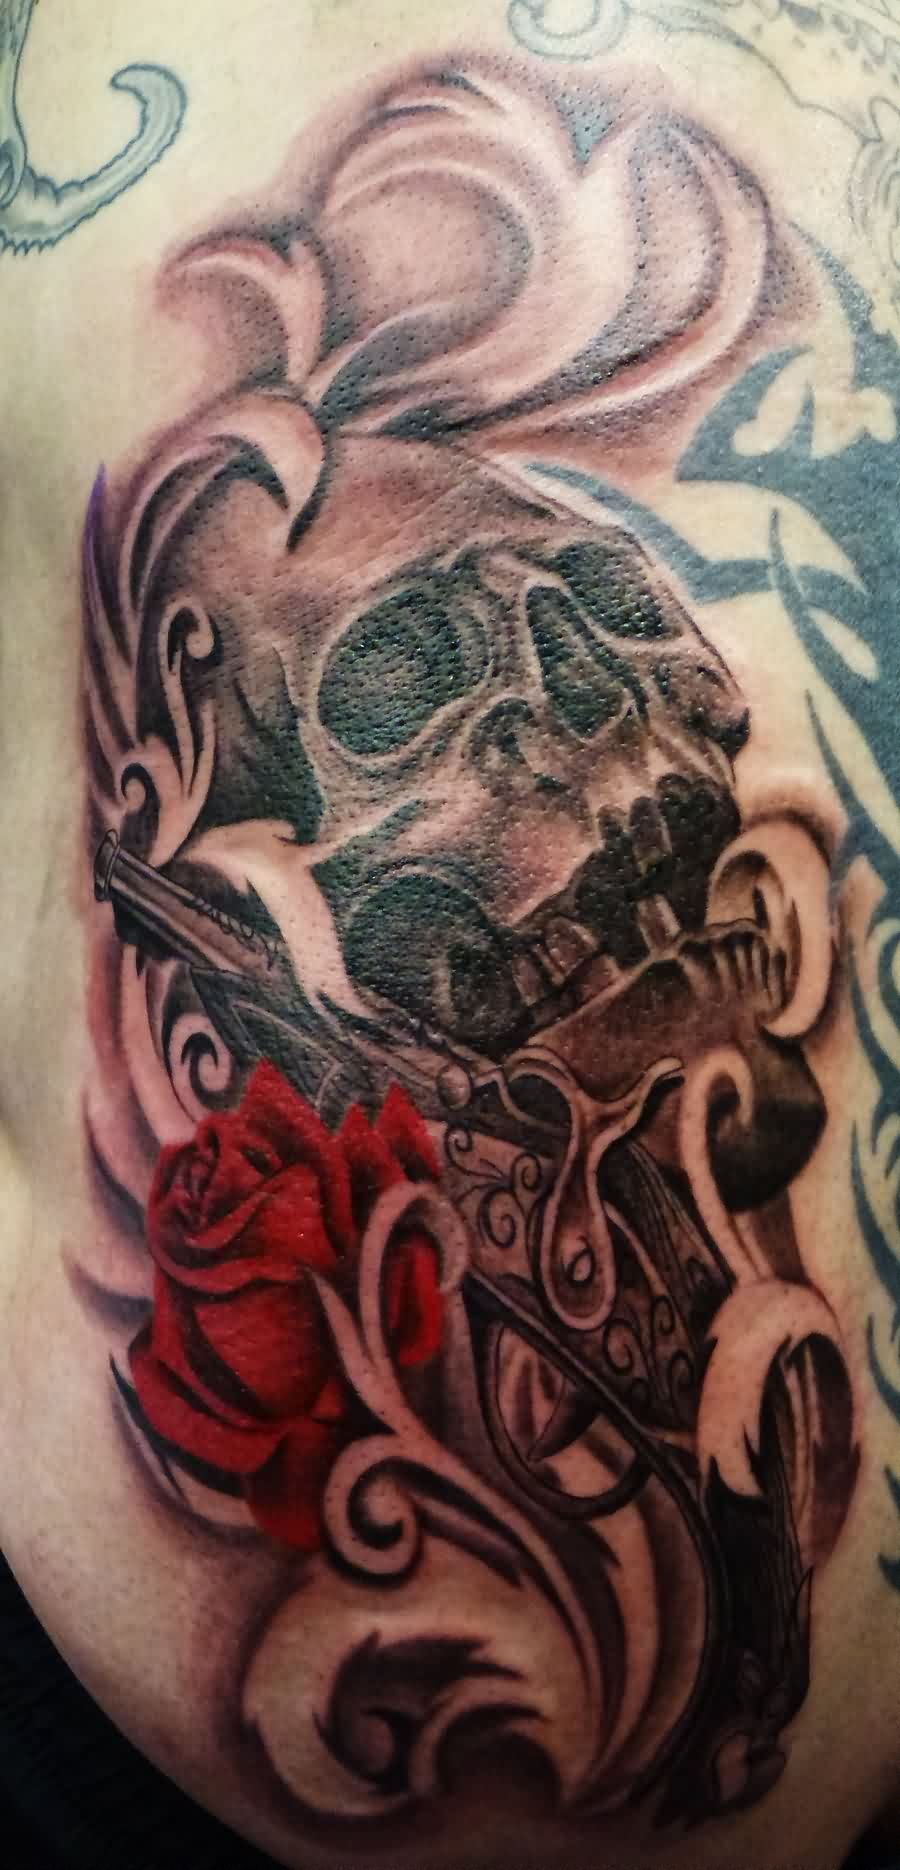 Grey Ink Skull Gun And Rose Tattoos